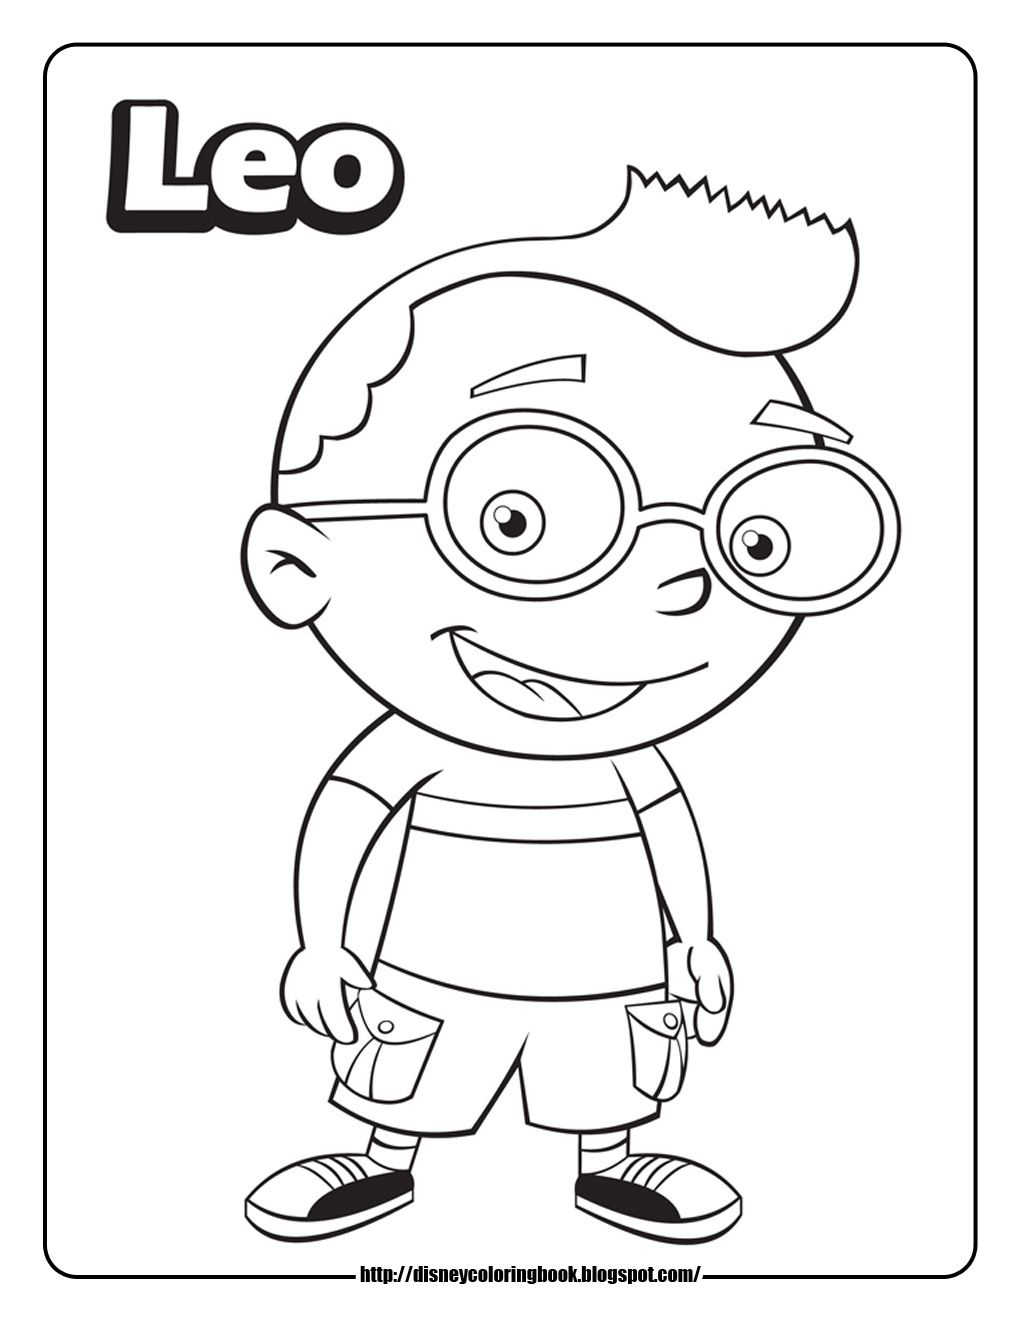 little einsteins coloring pages leo | Baby Coleman | Pinterest ...